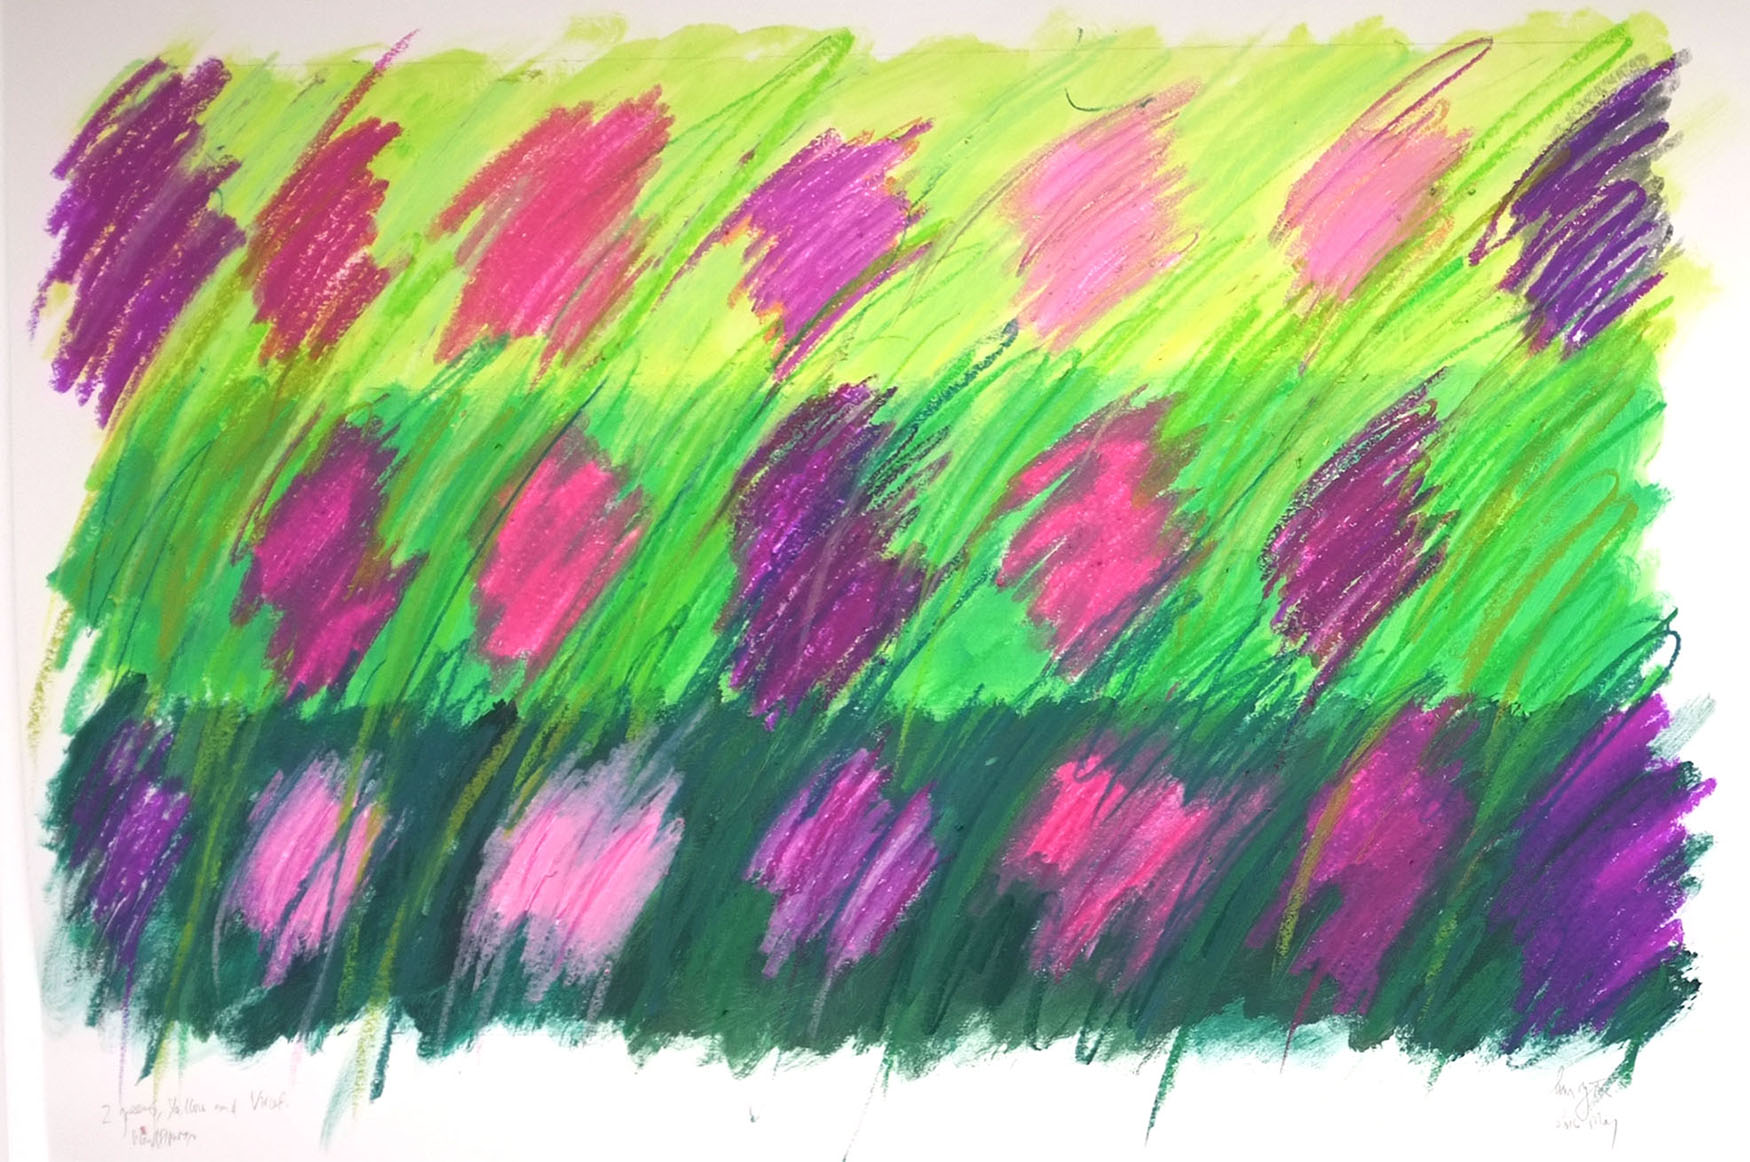 Colour exploration. Drawing on paper. Mixed media, oil pastels and acrylic paint A1 size